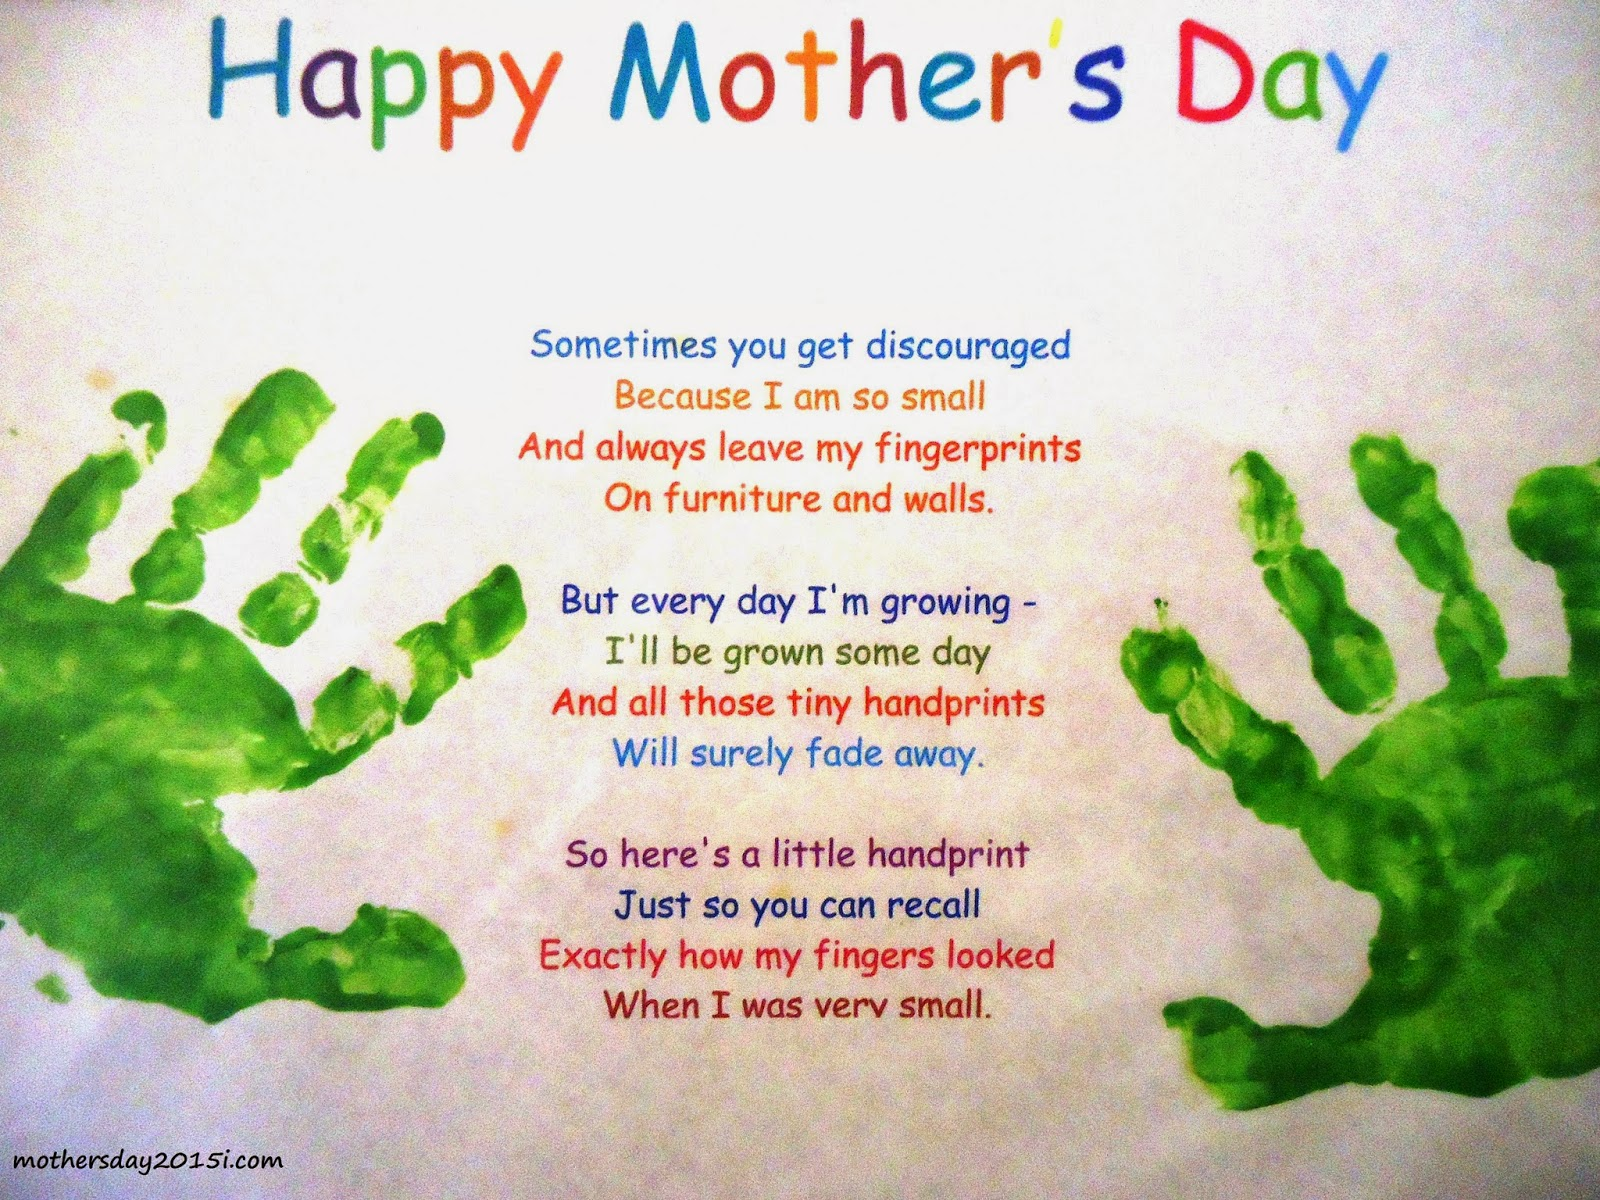 Happy Mother S Day 2017 Love Quotes Wishes And Sayings: Happy Mother's Day Quotes With Images For Facebook 2015